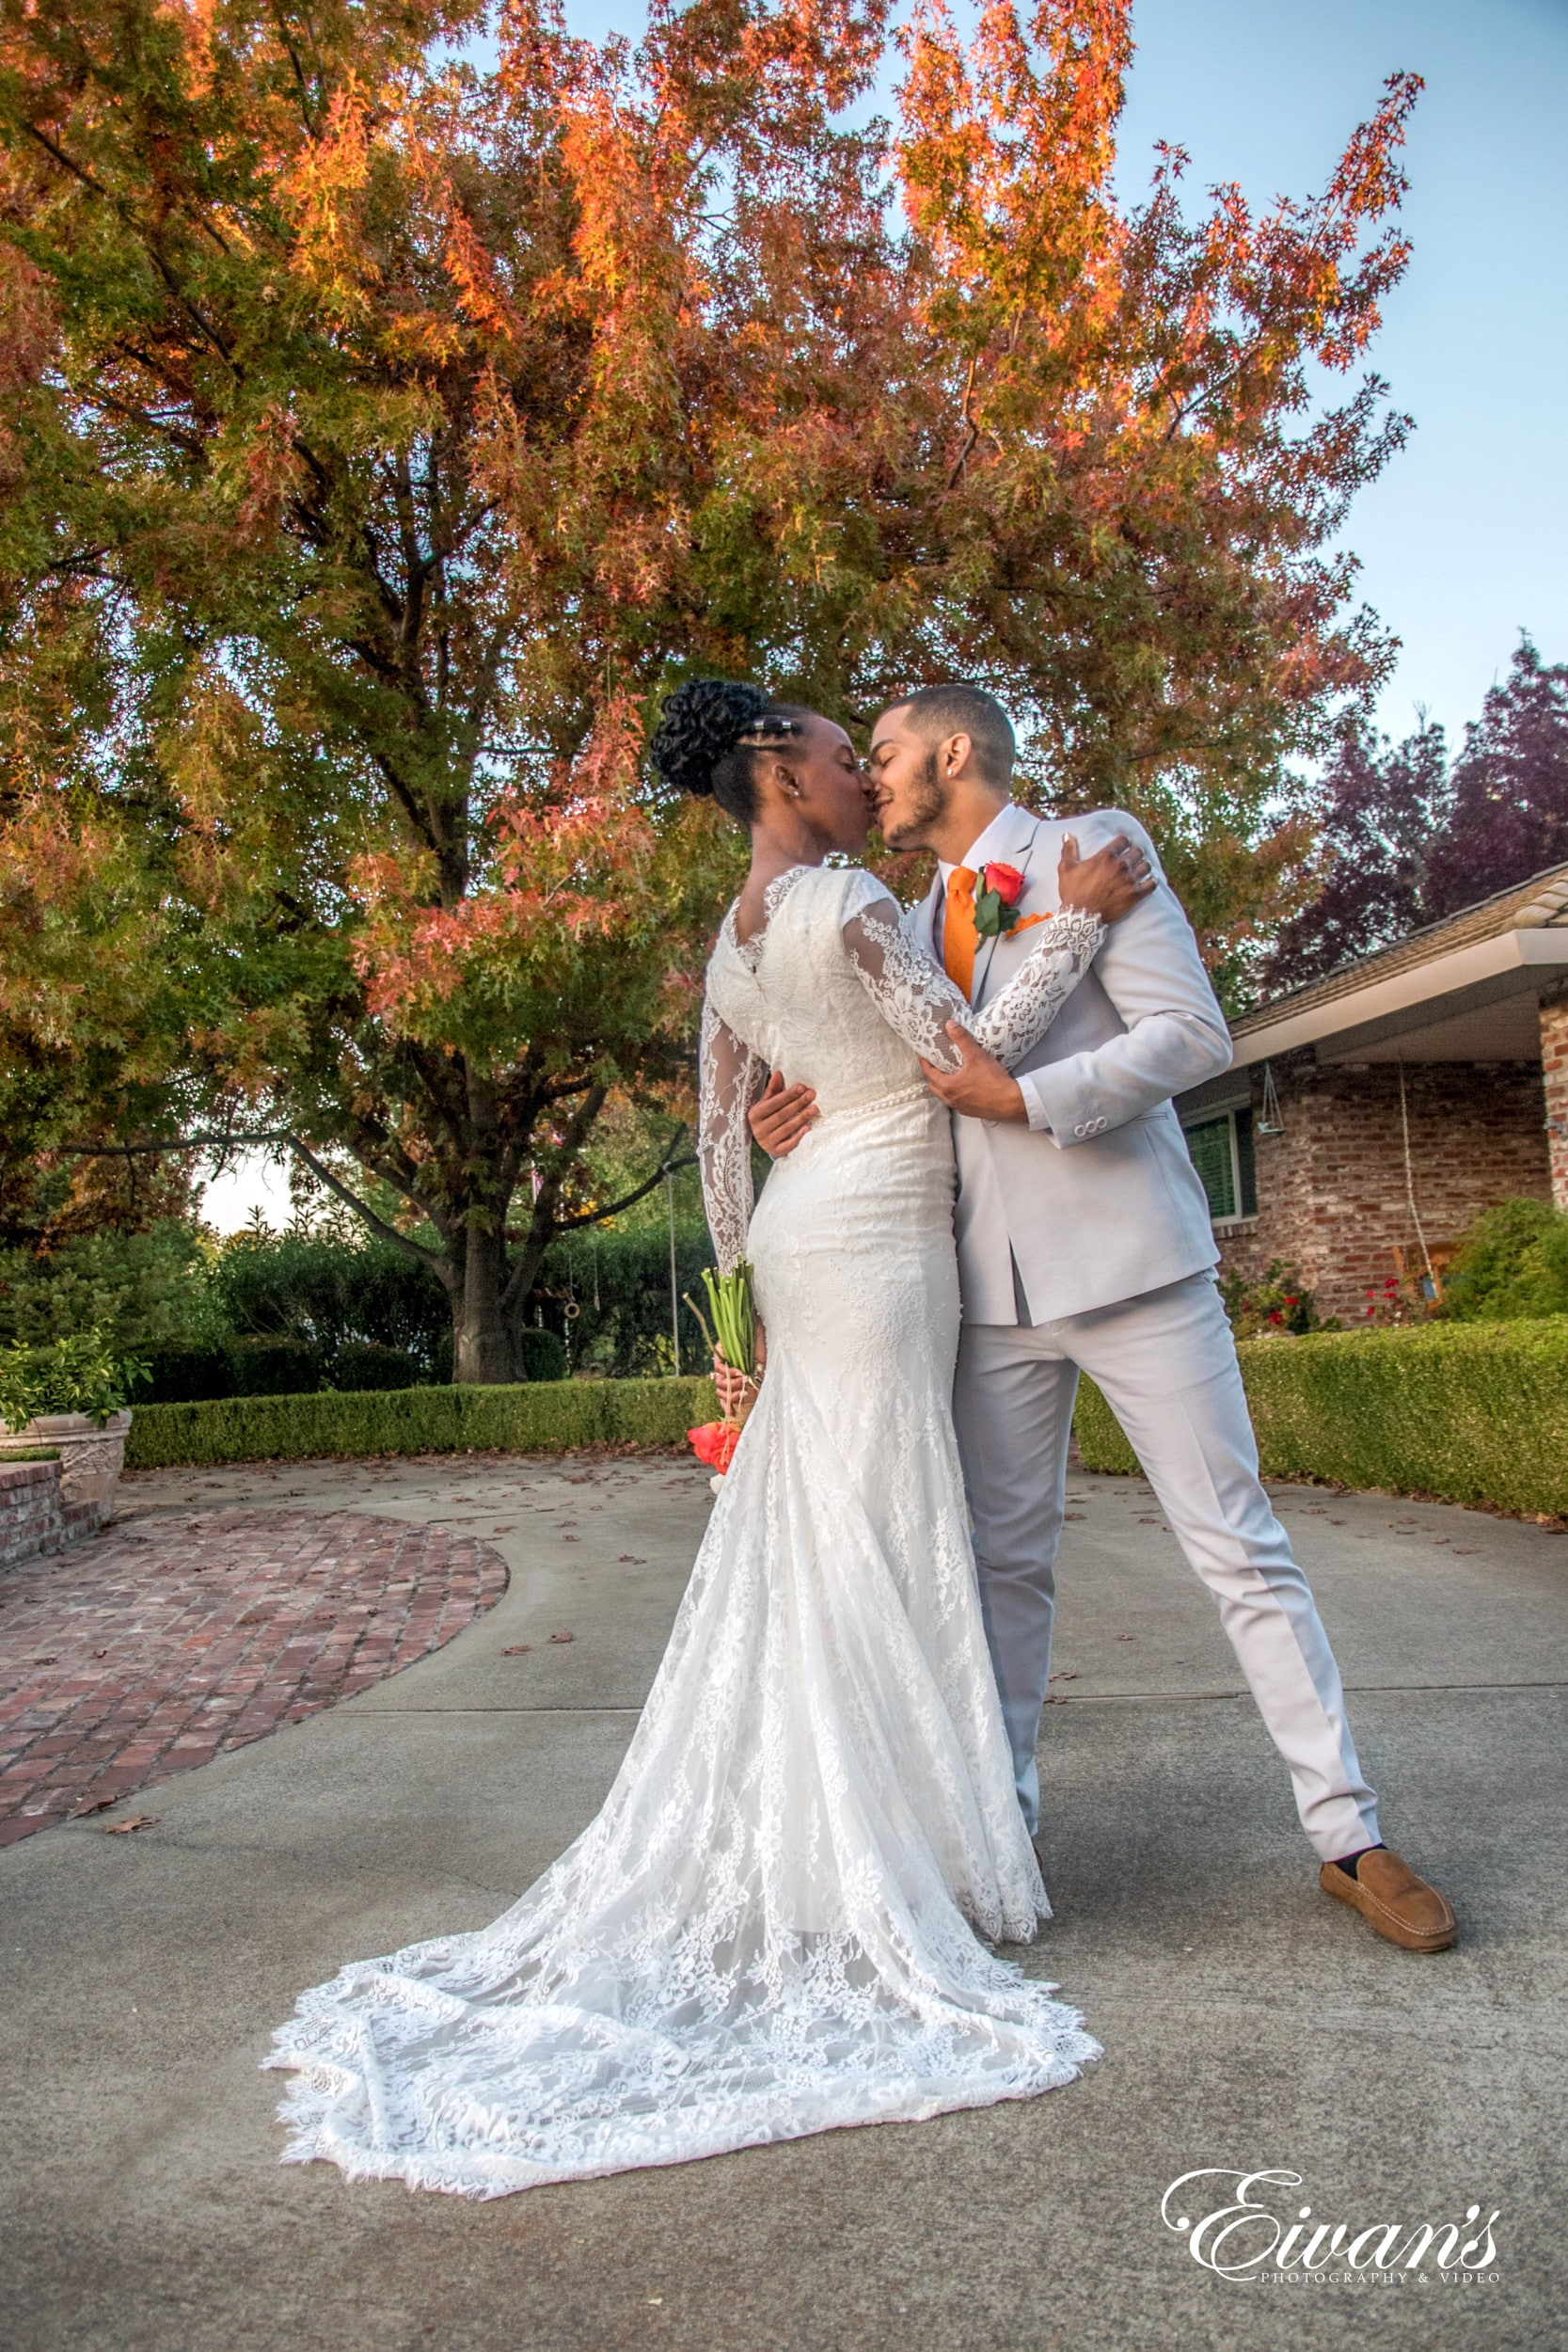 man in white suit kissing woman in white wedding dress on gray concrete pathway during daytime